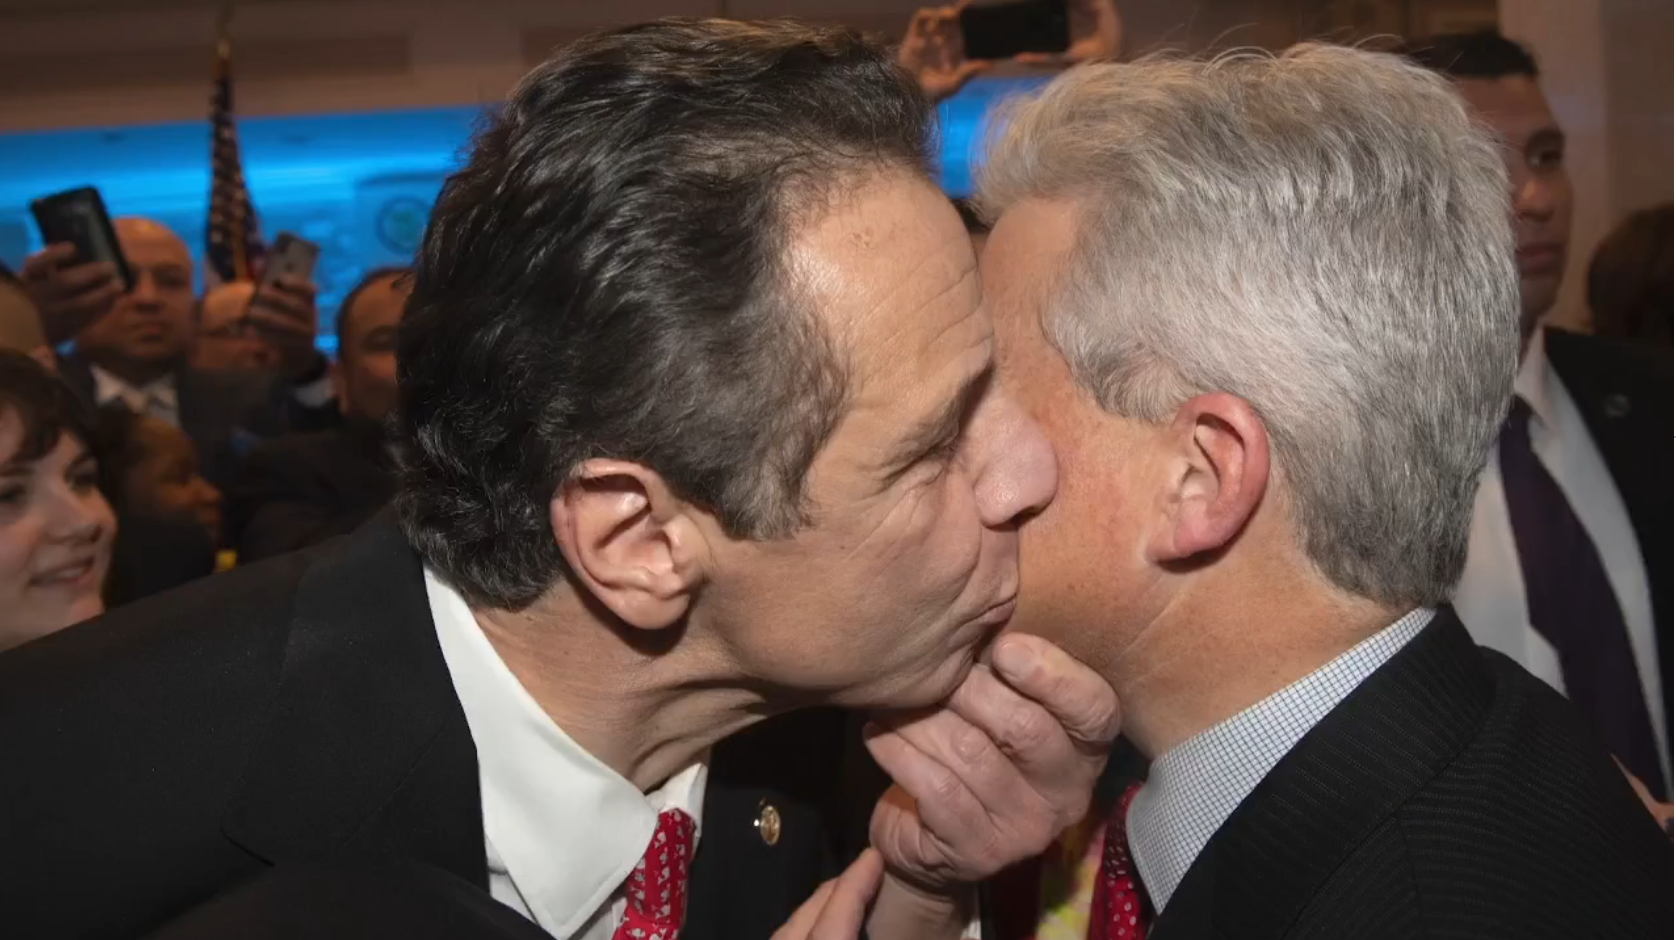 Andrew Cuomo kisses man on the cheek